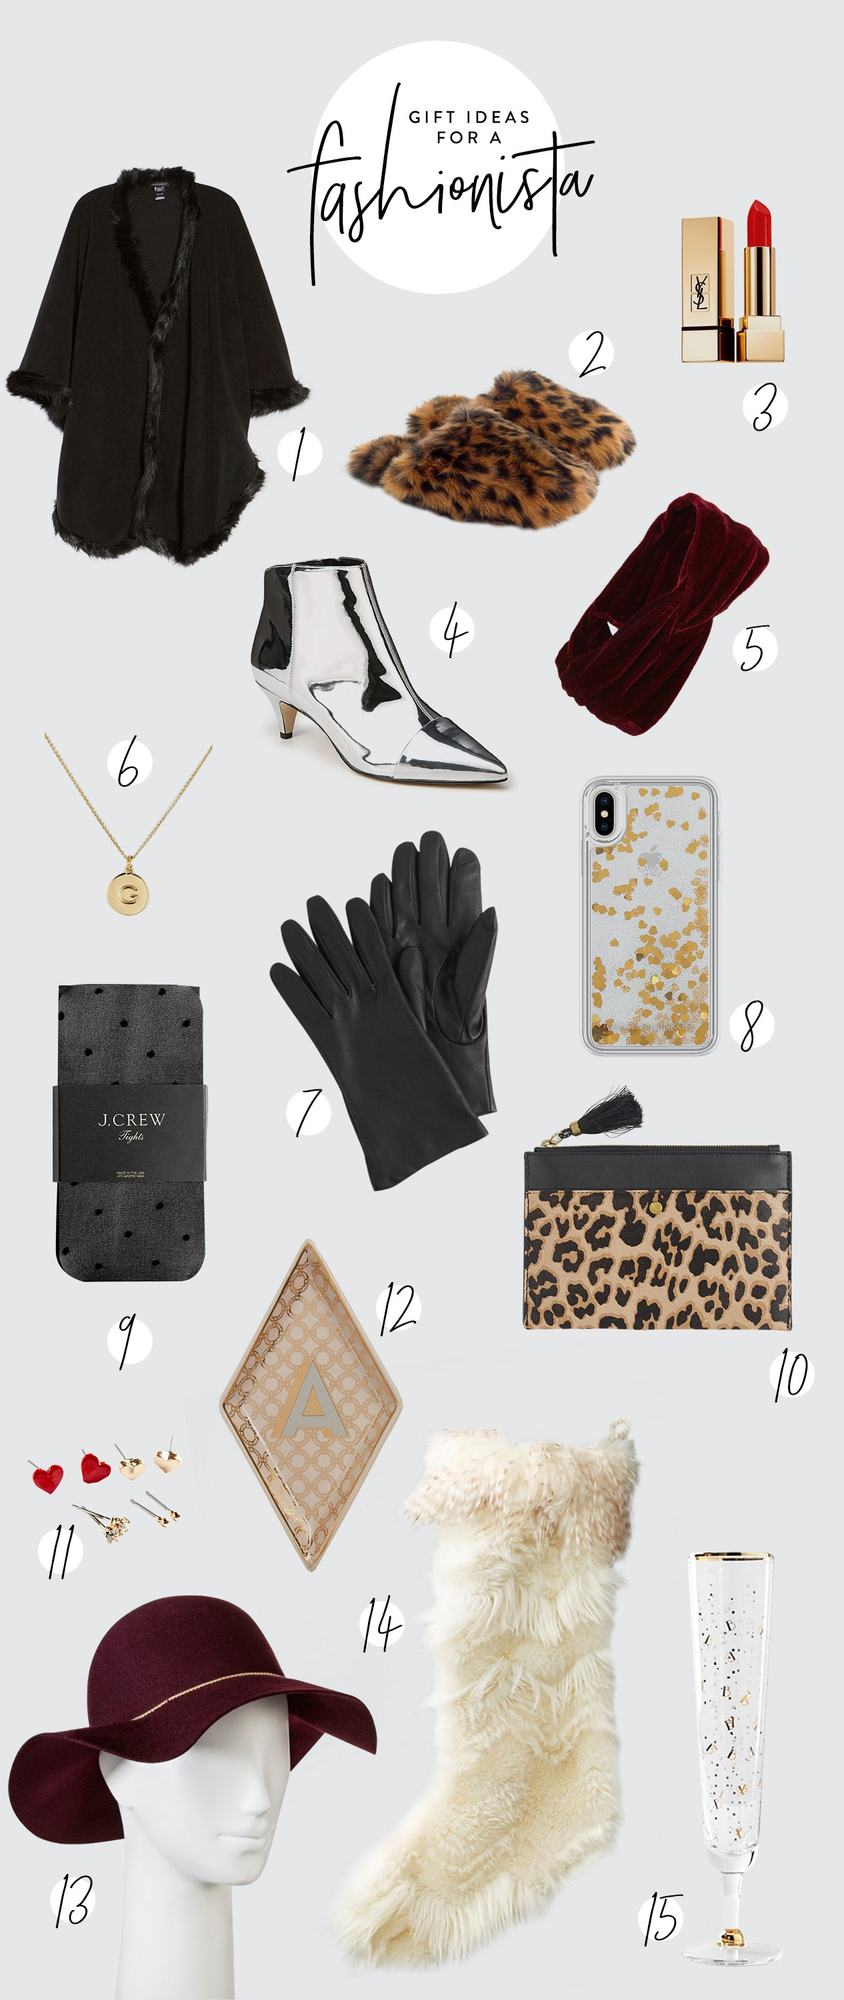 Gift shopping for your fashionable friend is made easy with this set of trendy gift ideas for a fashionista. She will turn heads with any of the gifts from this list! Here are our favorite gift ideas for a fashionista. #giftguide #holiday #shopping